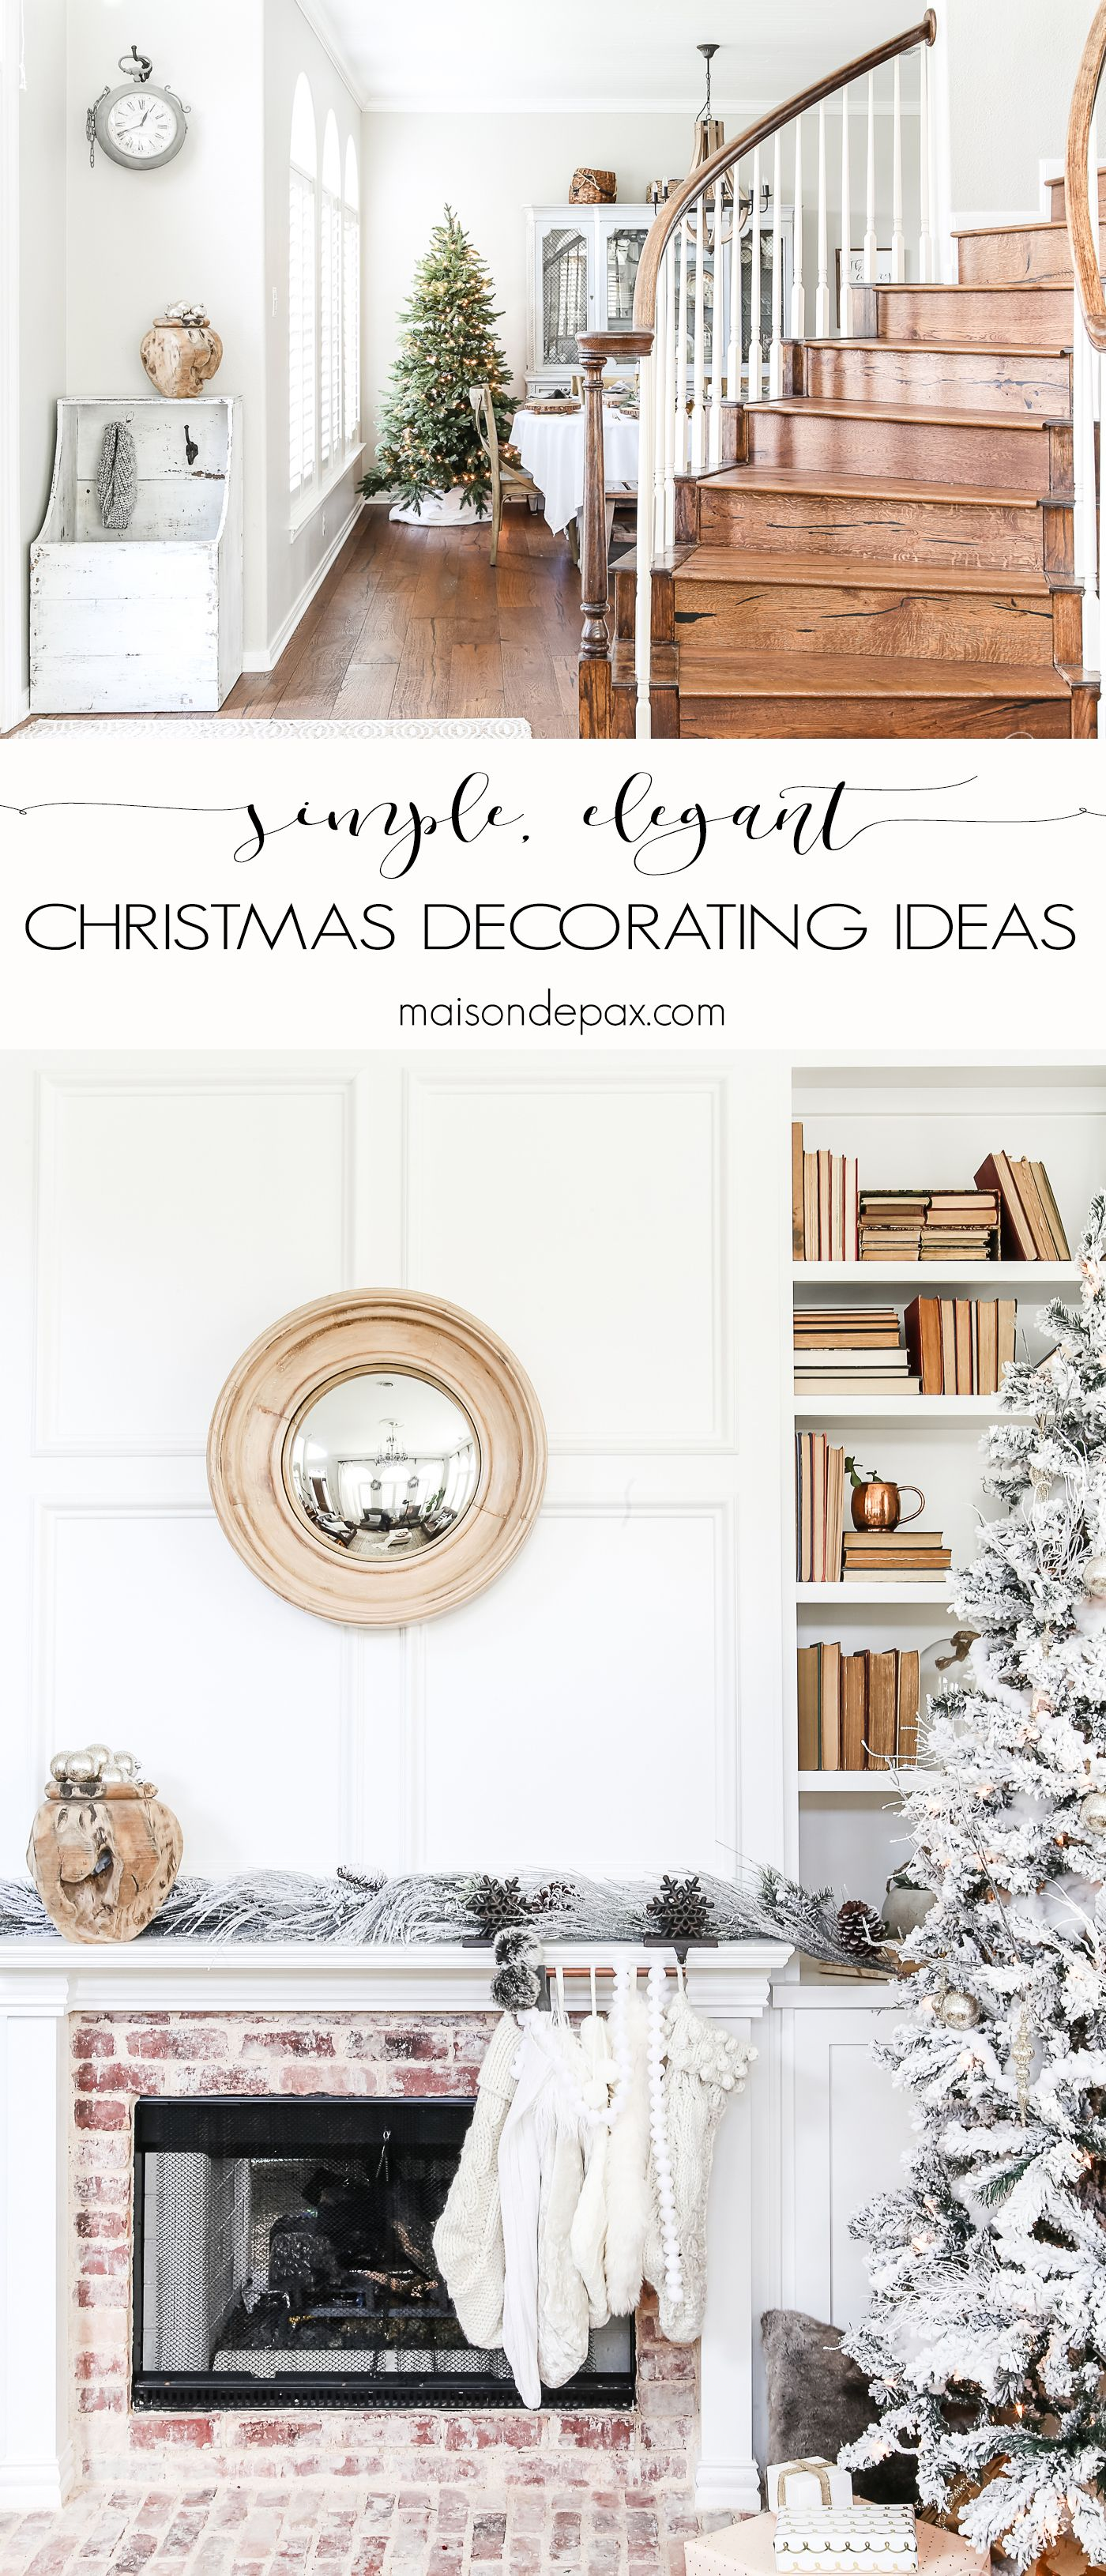 Looking For Simple, Elegant Holiday Decor Ideas? These 10 Tips Will Help  You Turn